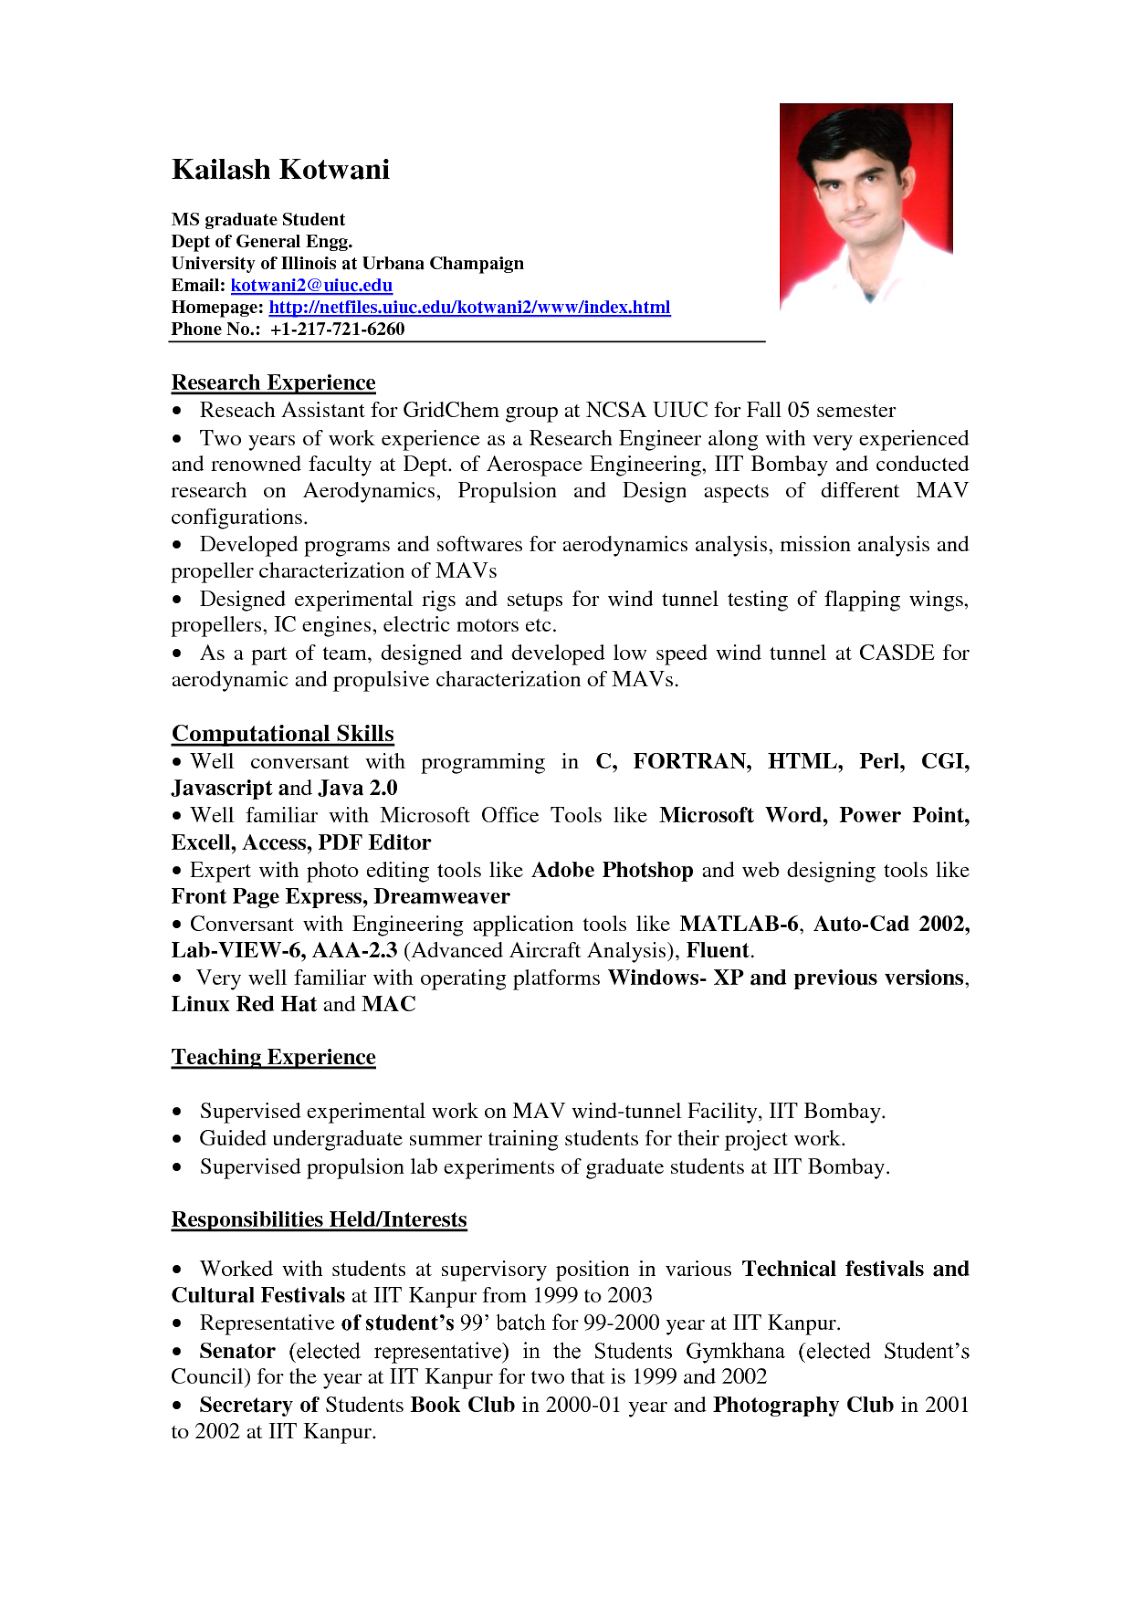 sample resume format for students sample resumes sample resume format for students